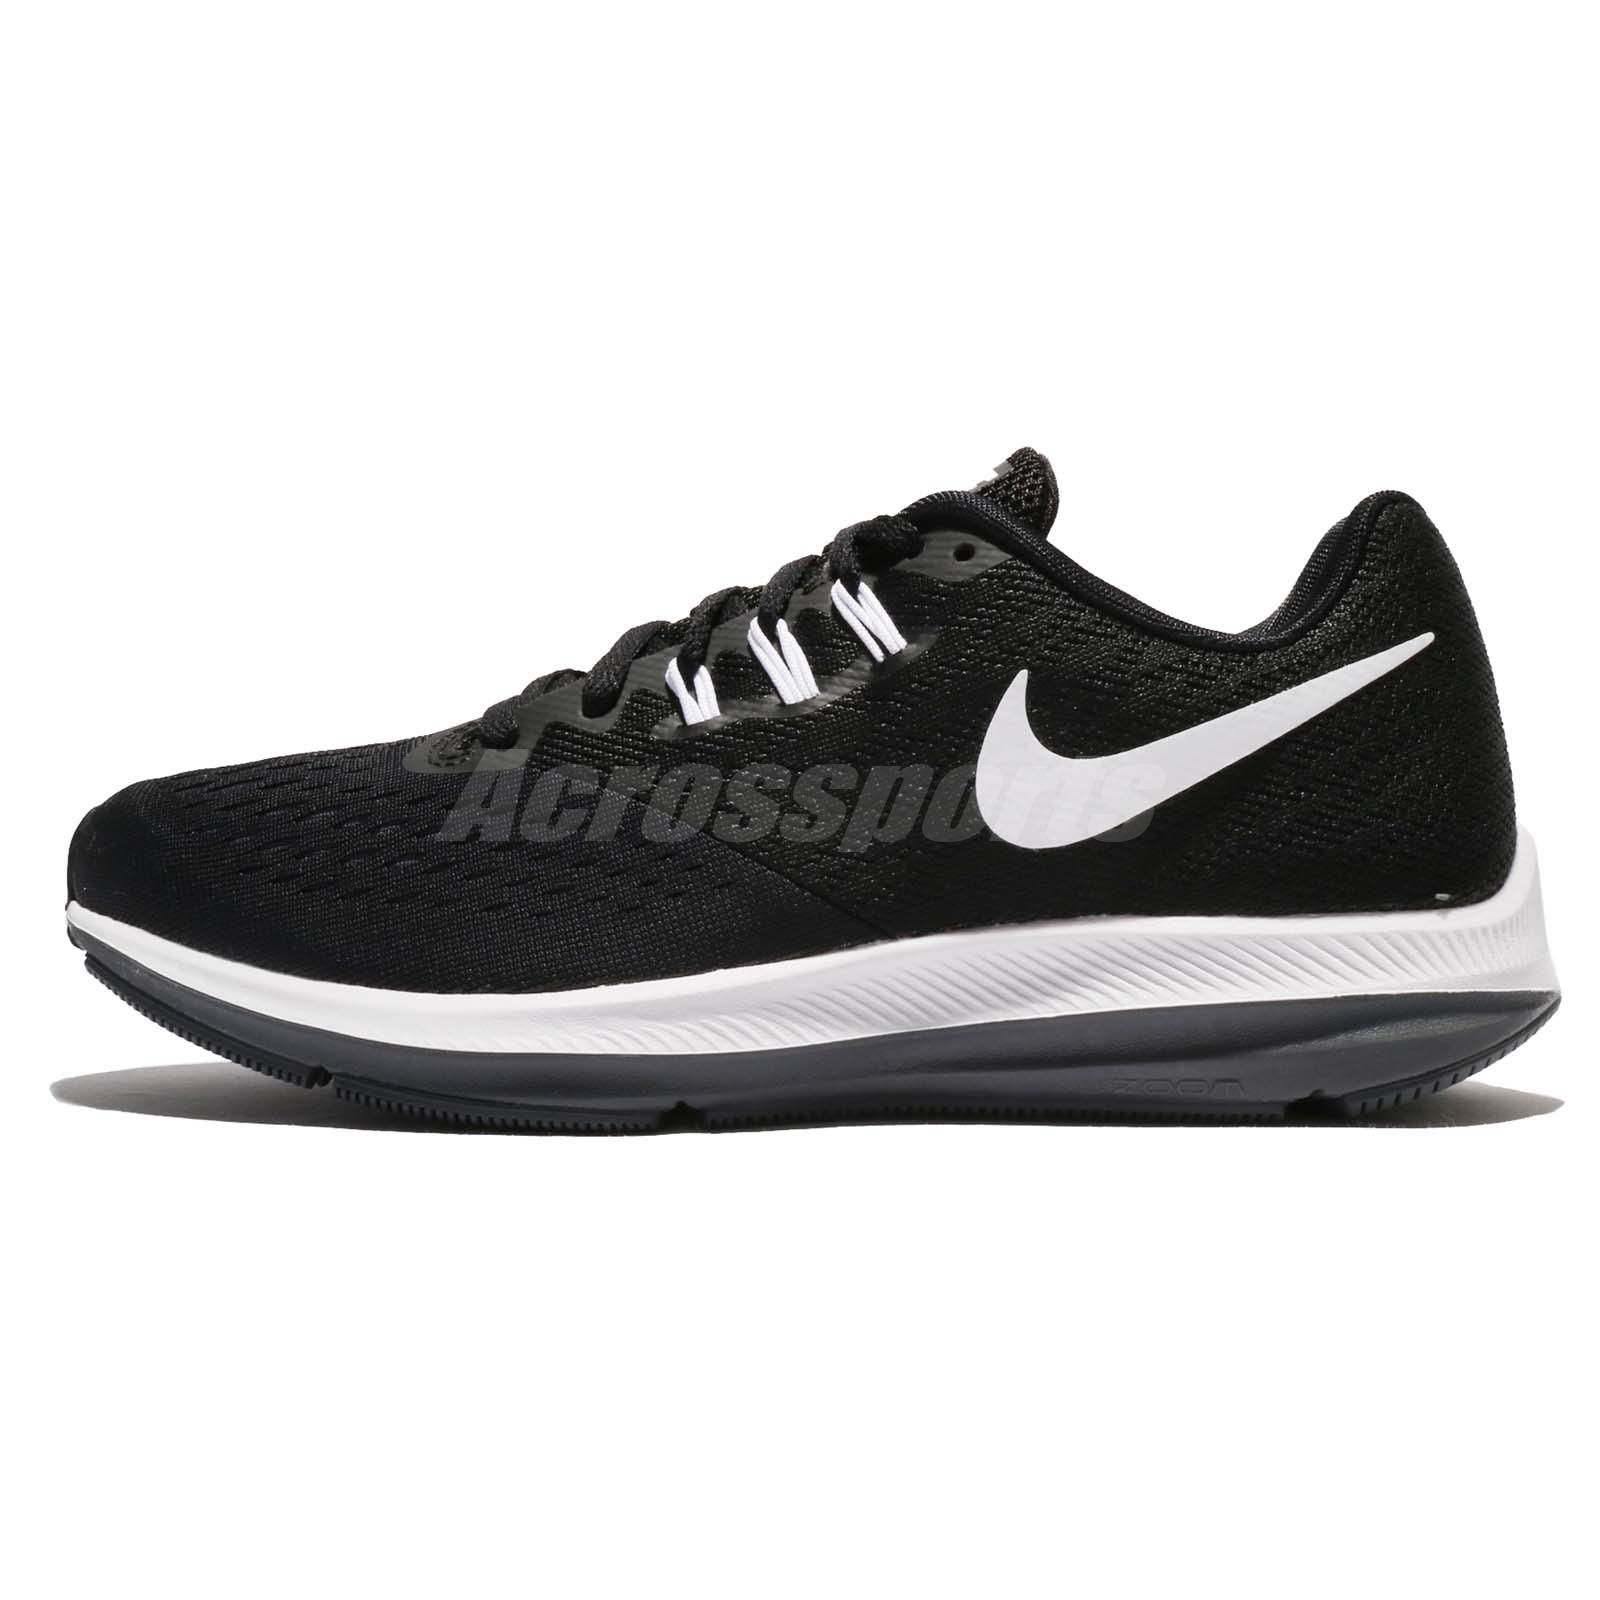 be94e32f5b4 Wmns Nike Zoom Winflo 4 IV Black White Women Running Shoes Sneakers 898485 -001